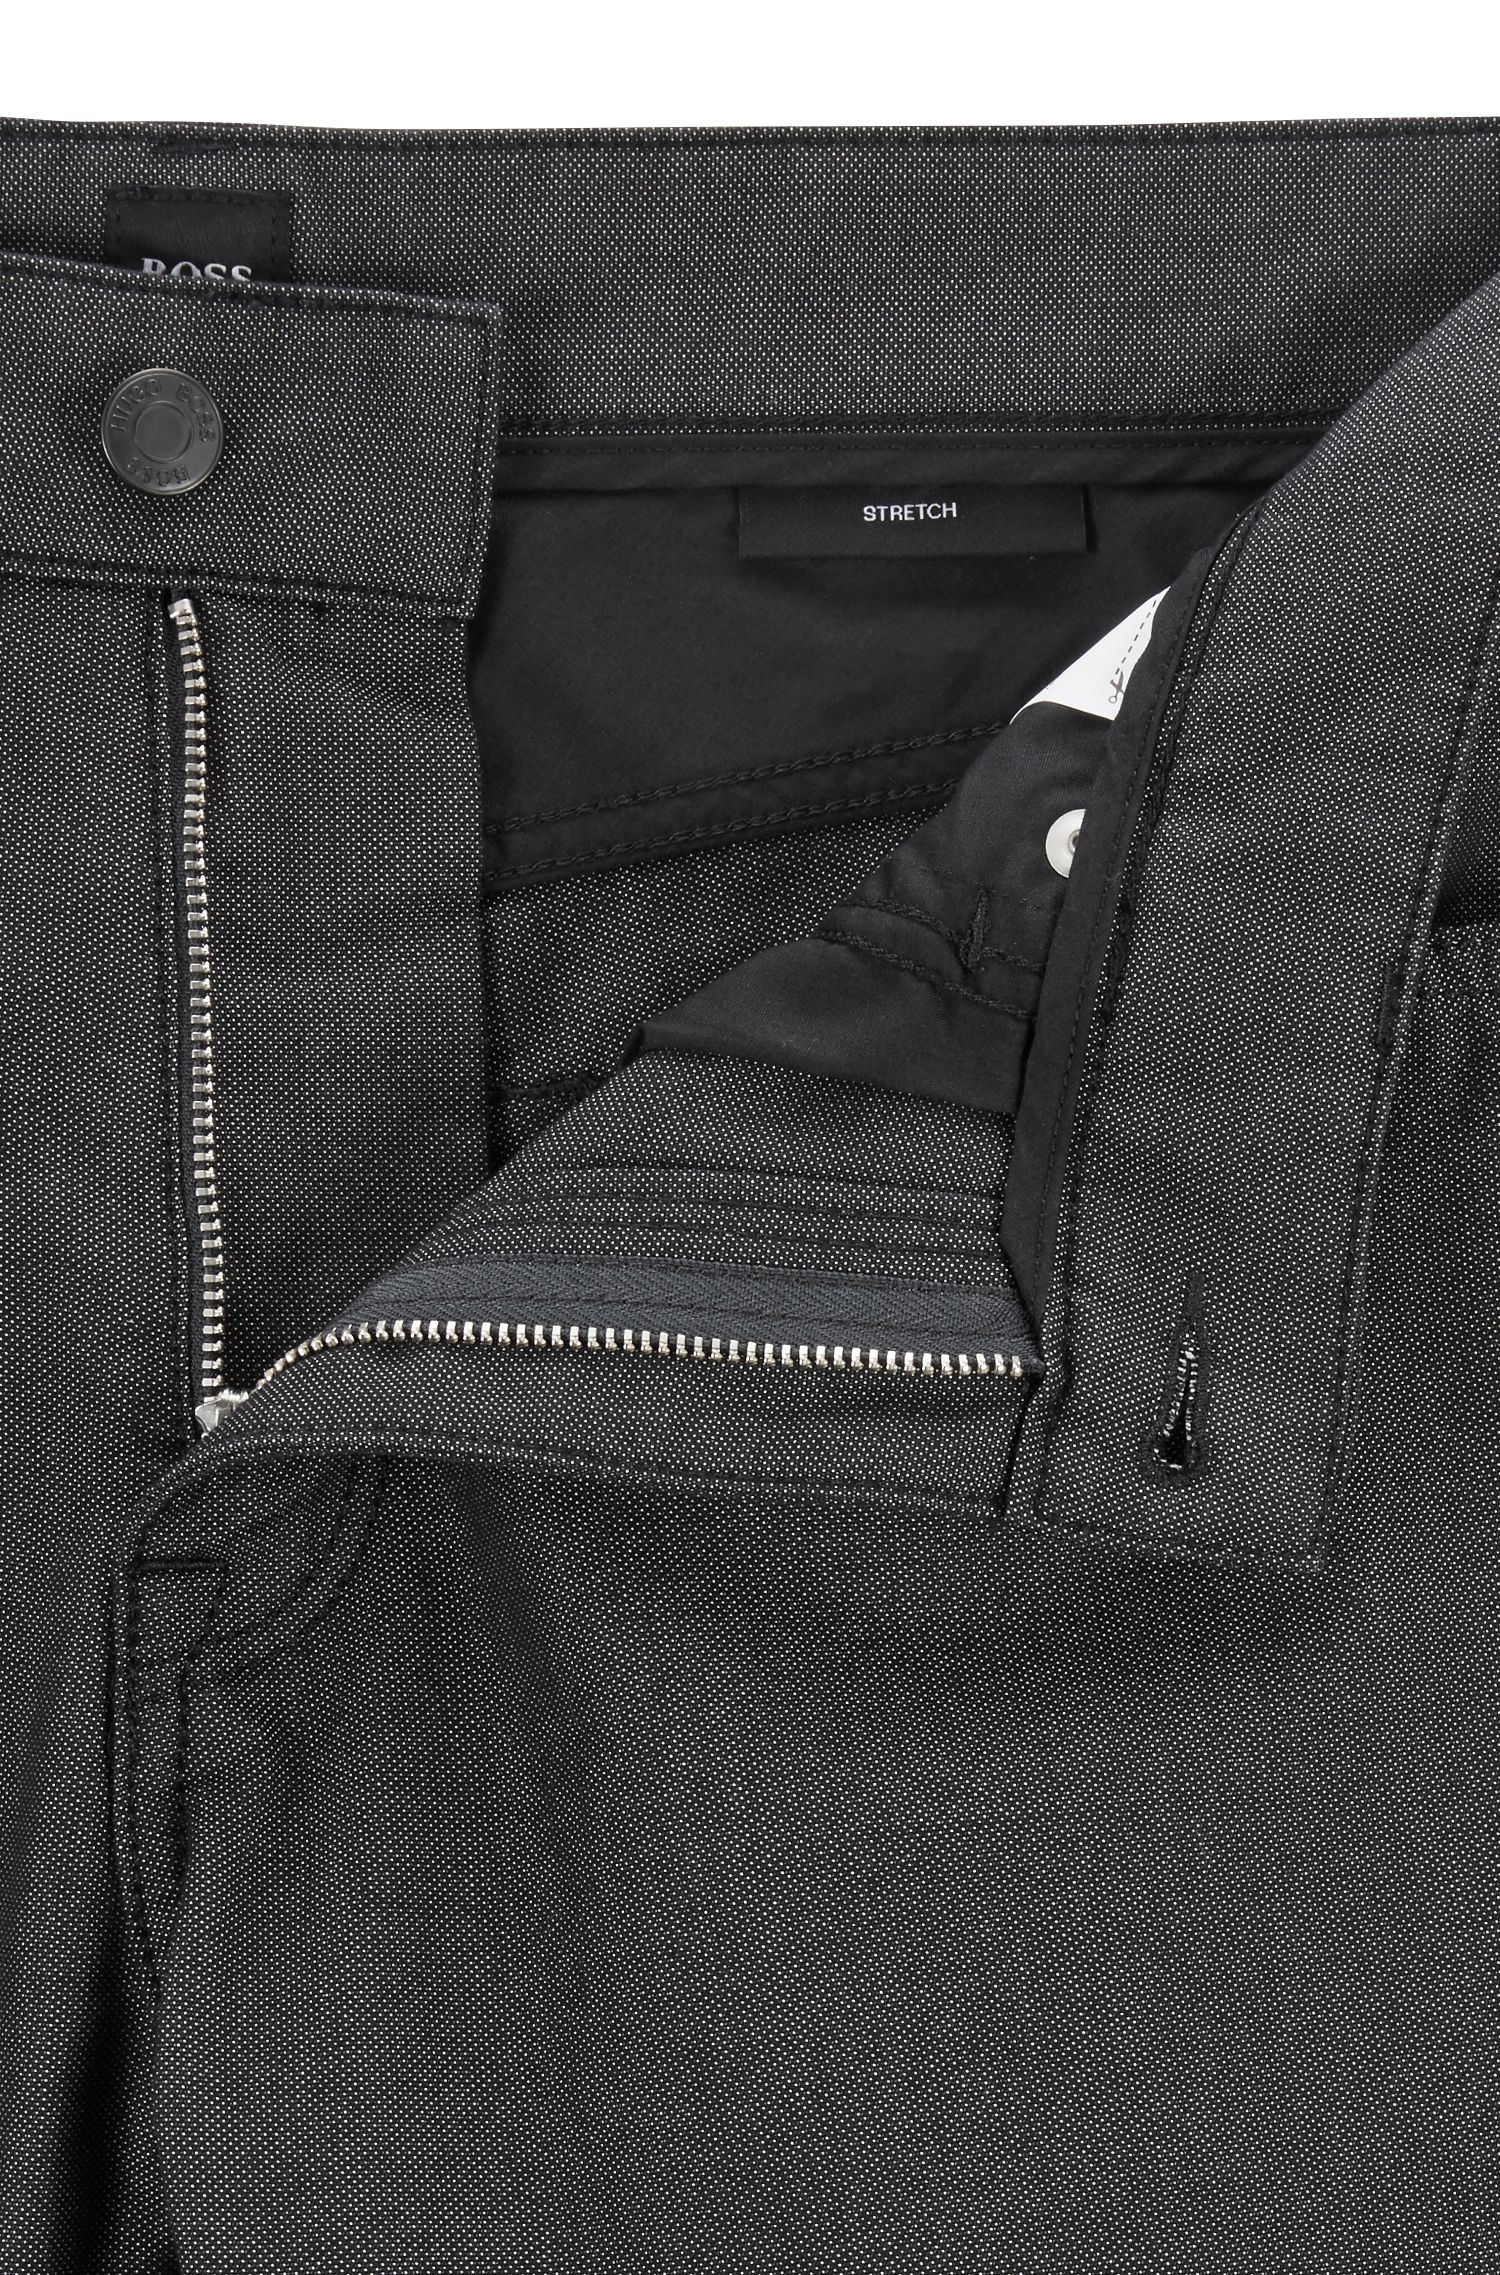 Regular-Fit Jeans aus strukturiertem Pinpoint-Denim, Schwarz